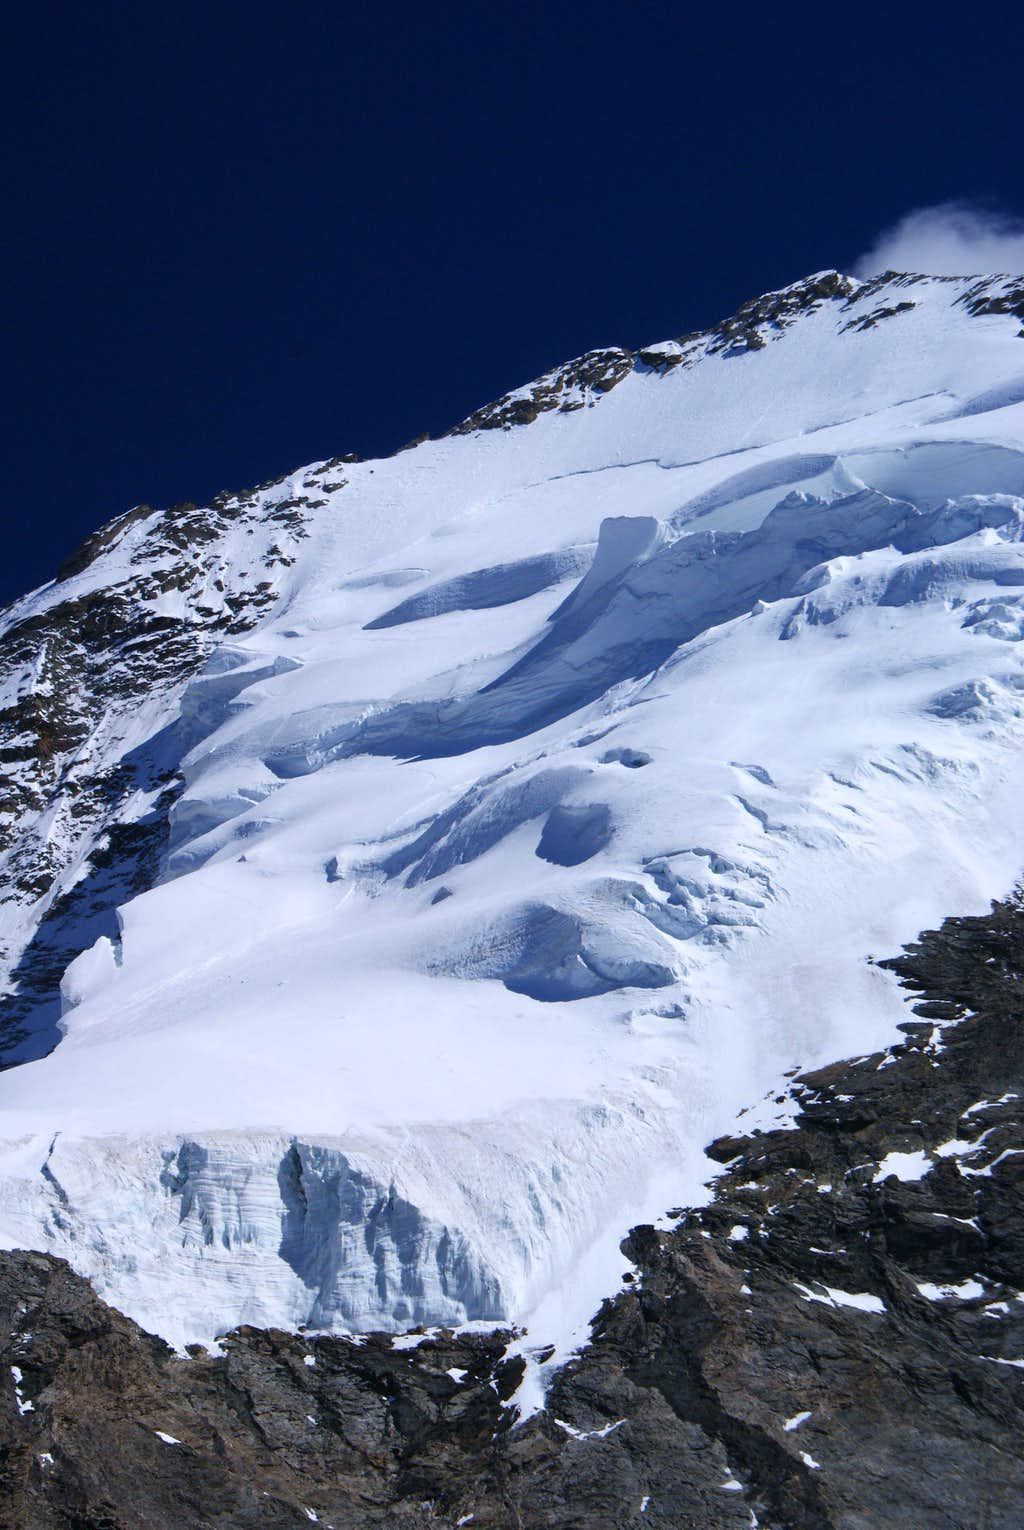 NW Face, where we made it yesterday.